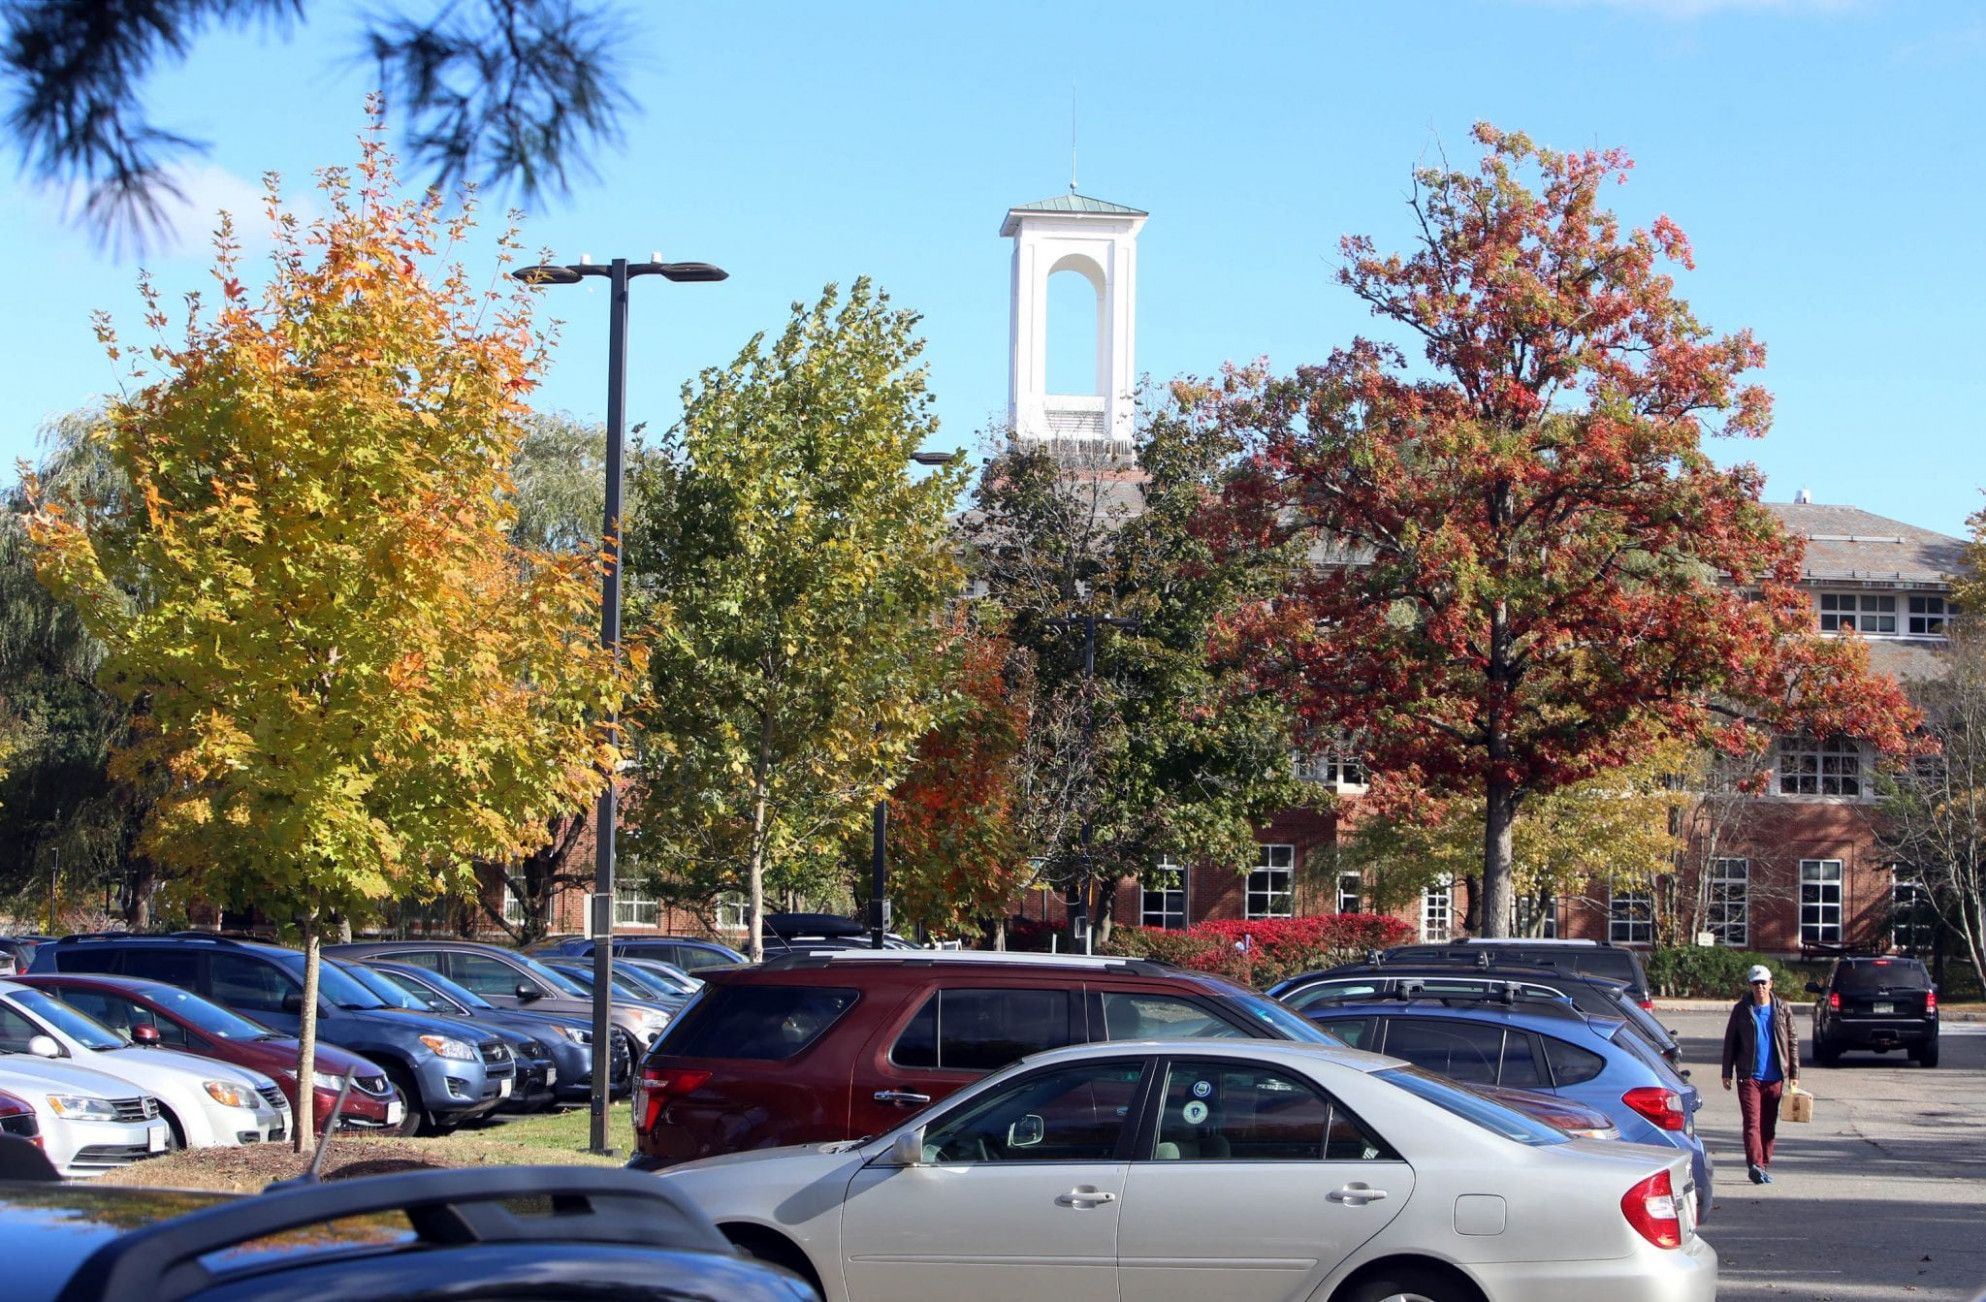 Deja Vu On Library Parking Lot Trees And Solar Carports, But ..